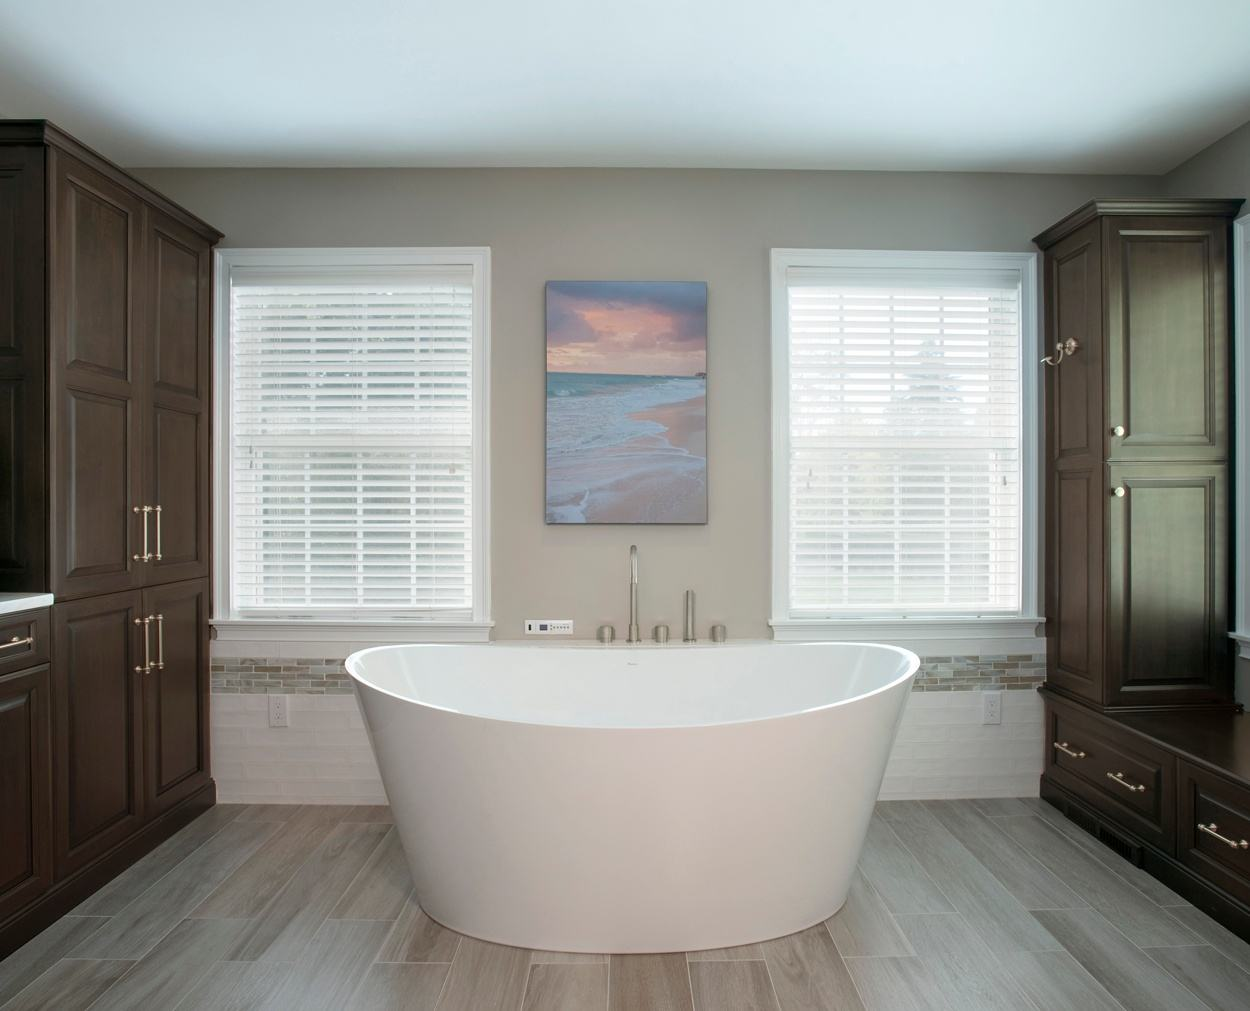 White freestanding tub with Grabill cabinets in a dark stain.